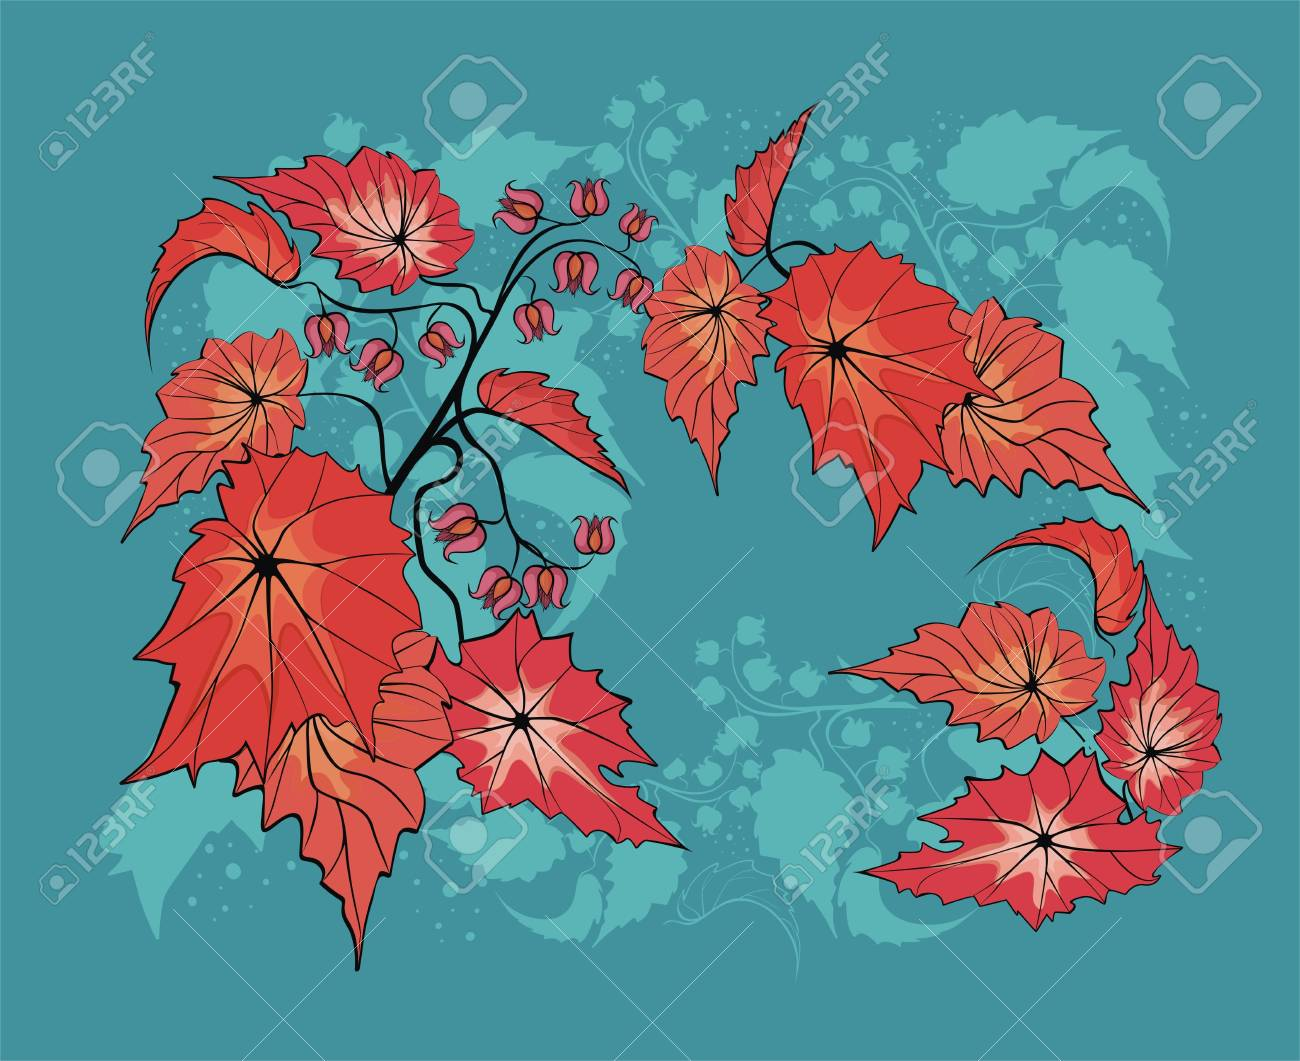 Flower background with begonia plant Stock Vector - 21263932